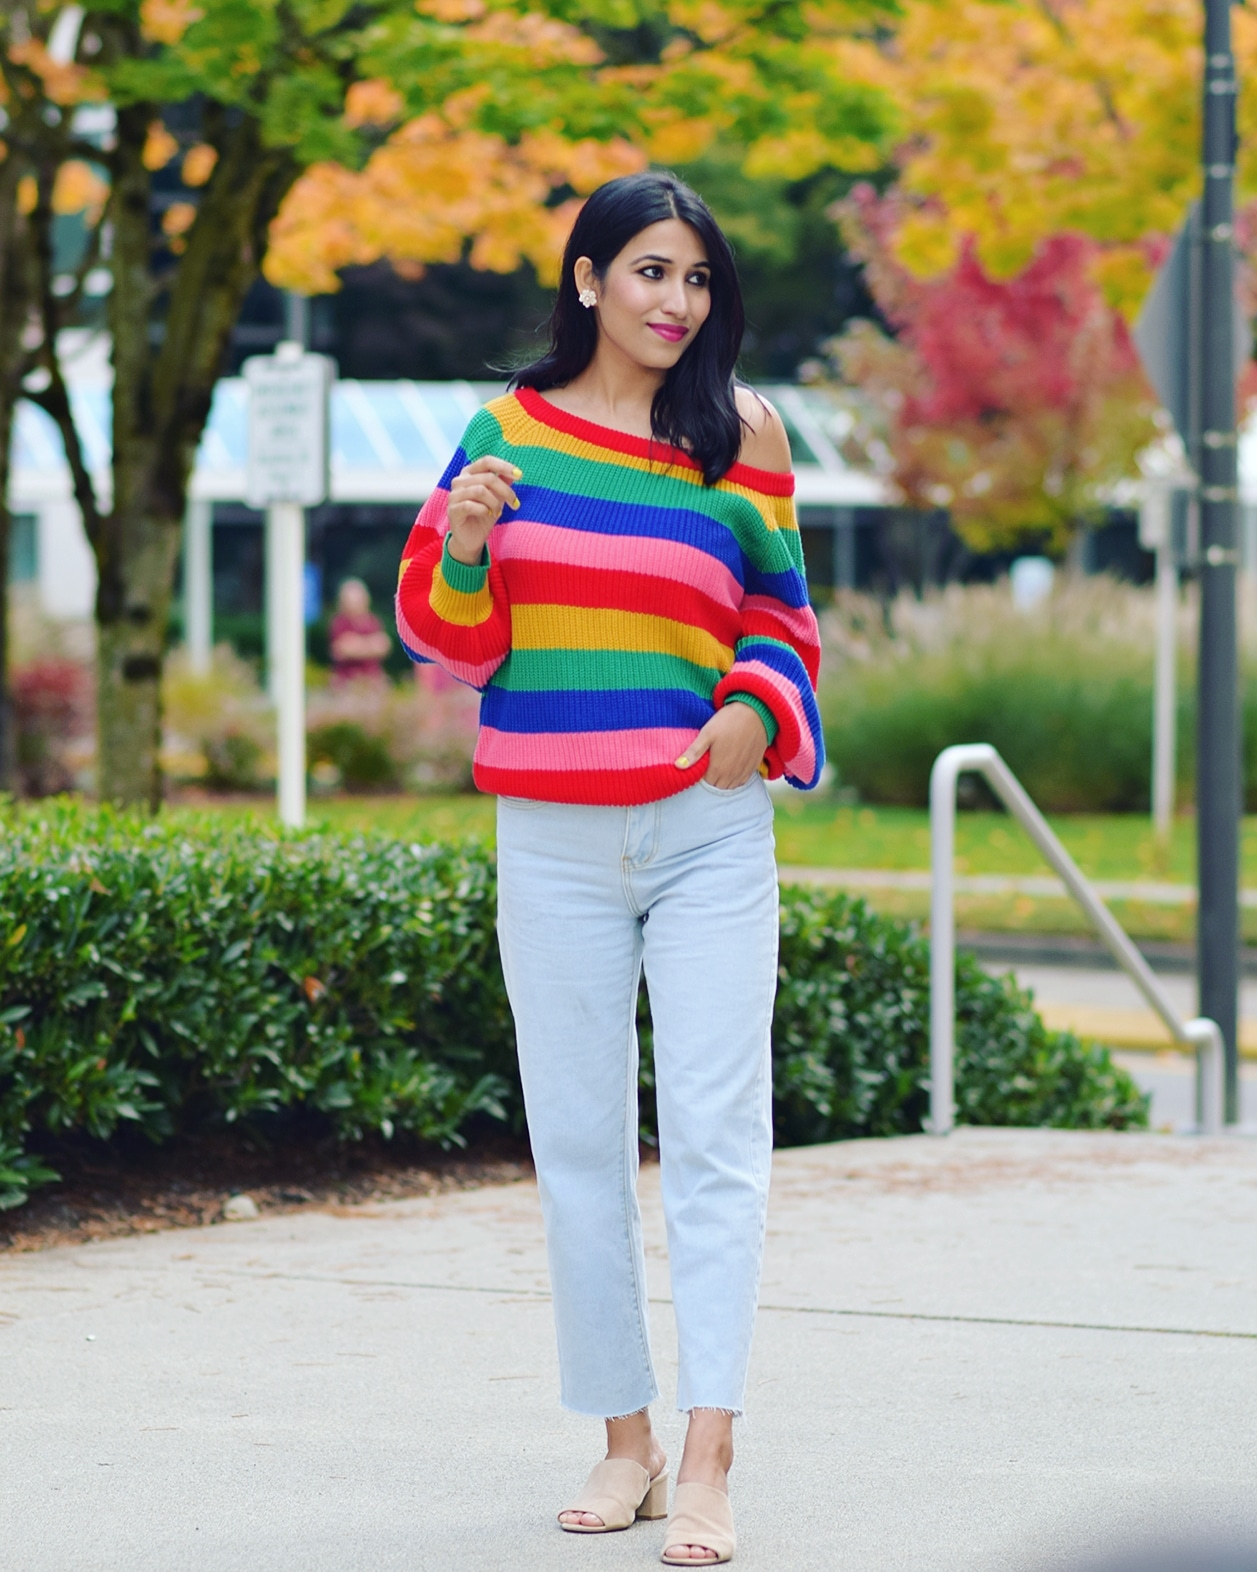 Fall Outfit Ideas For Everyday Looks  SHEIN